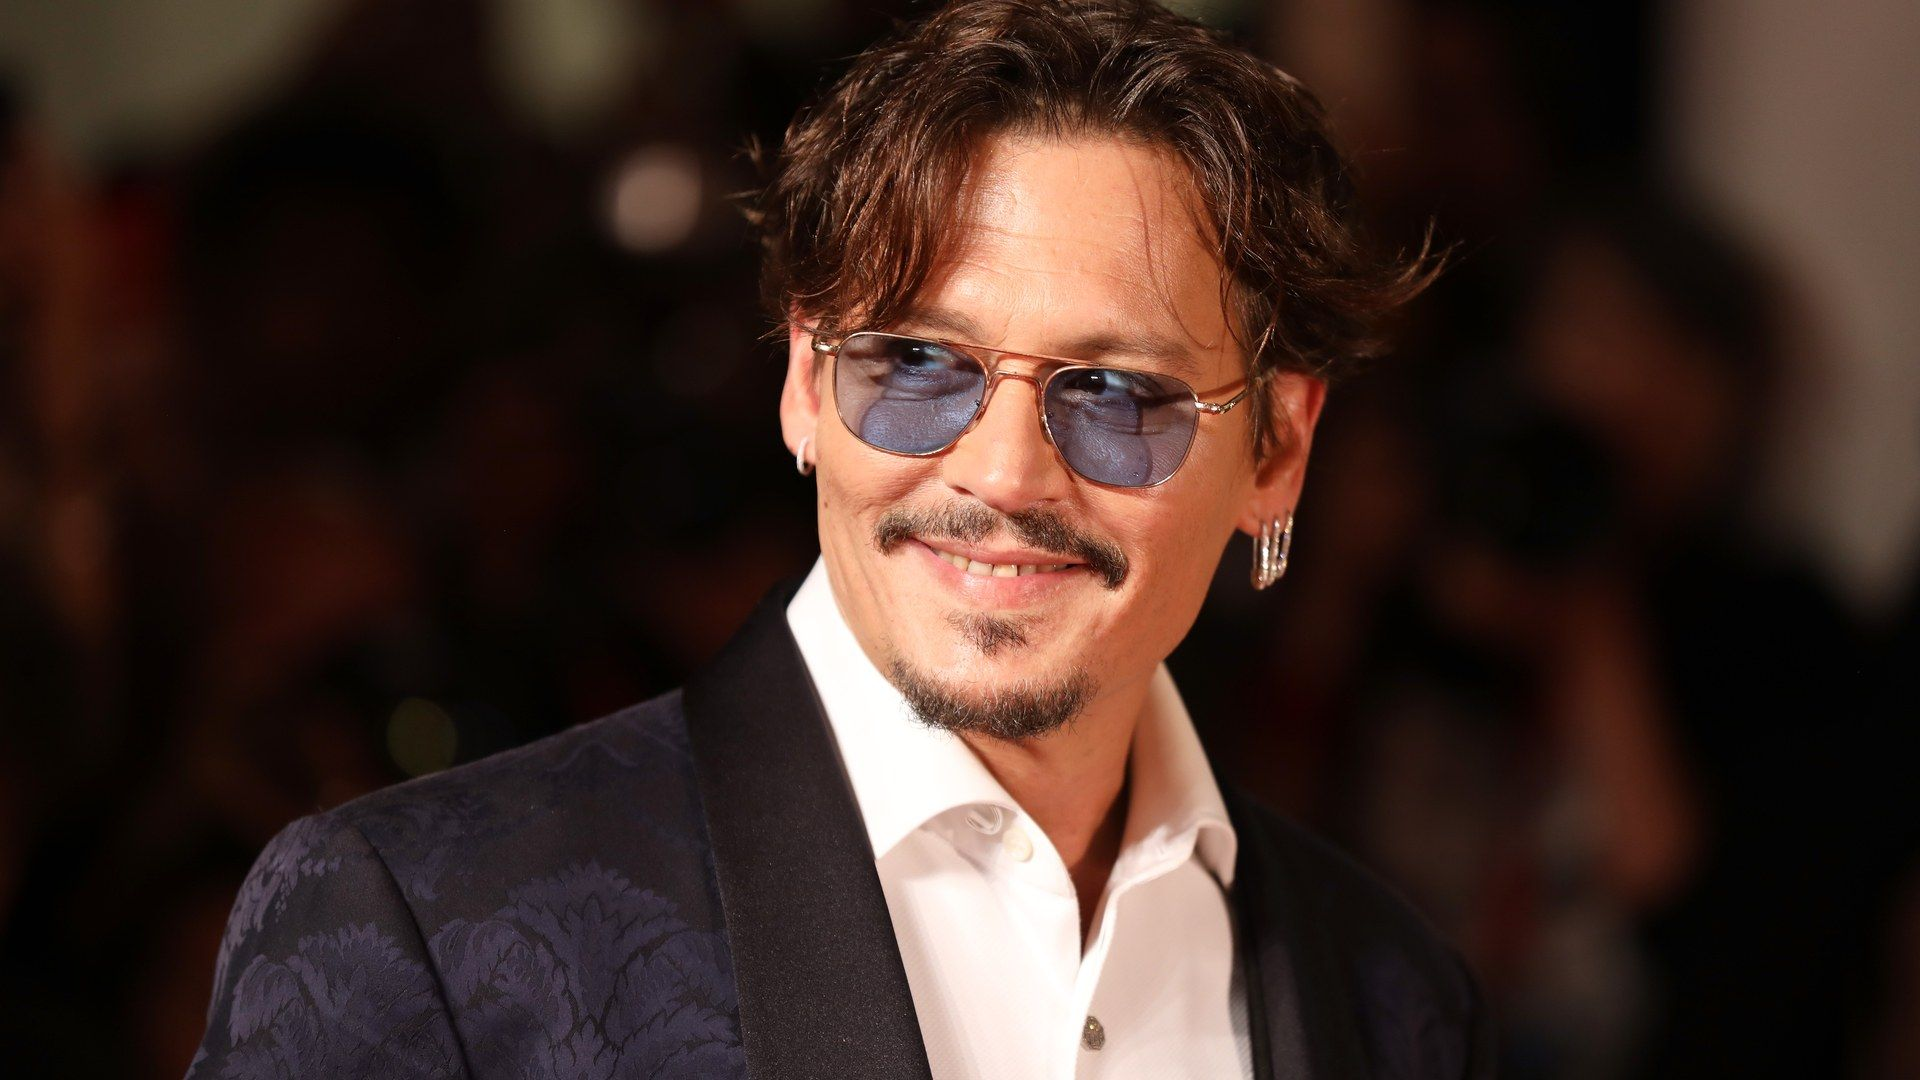 Mostra del Cinema di Venezia 2019, per Johnny Depp il red carpet più rock